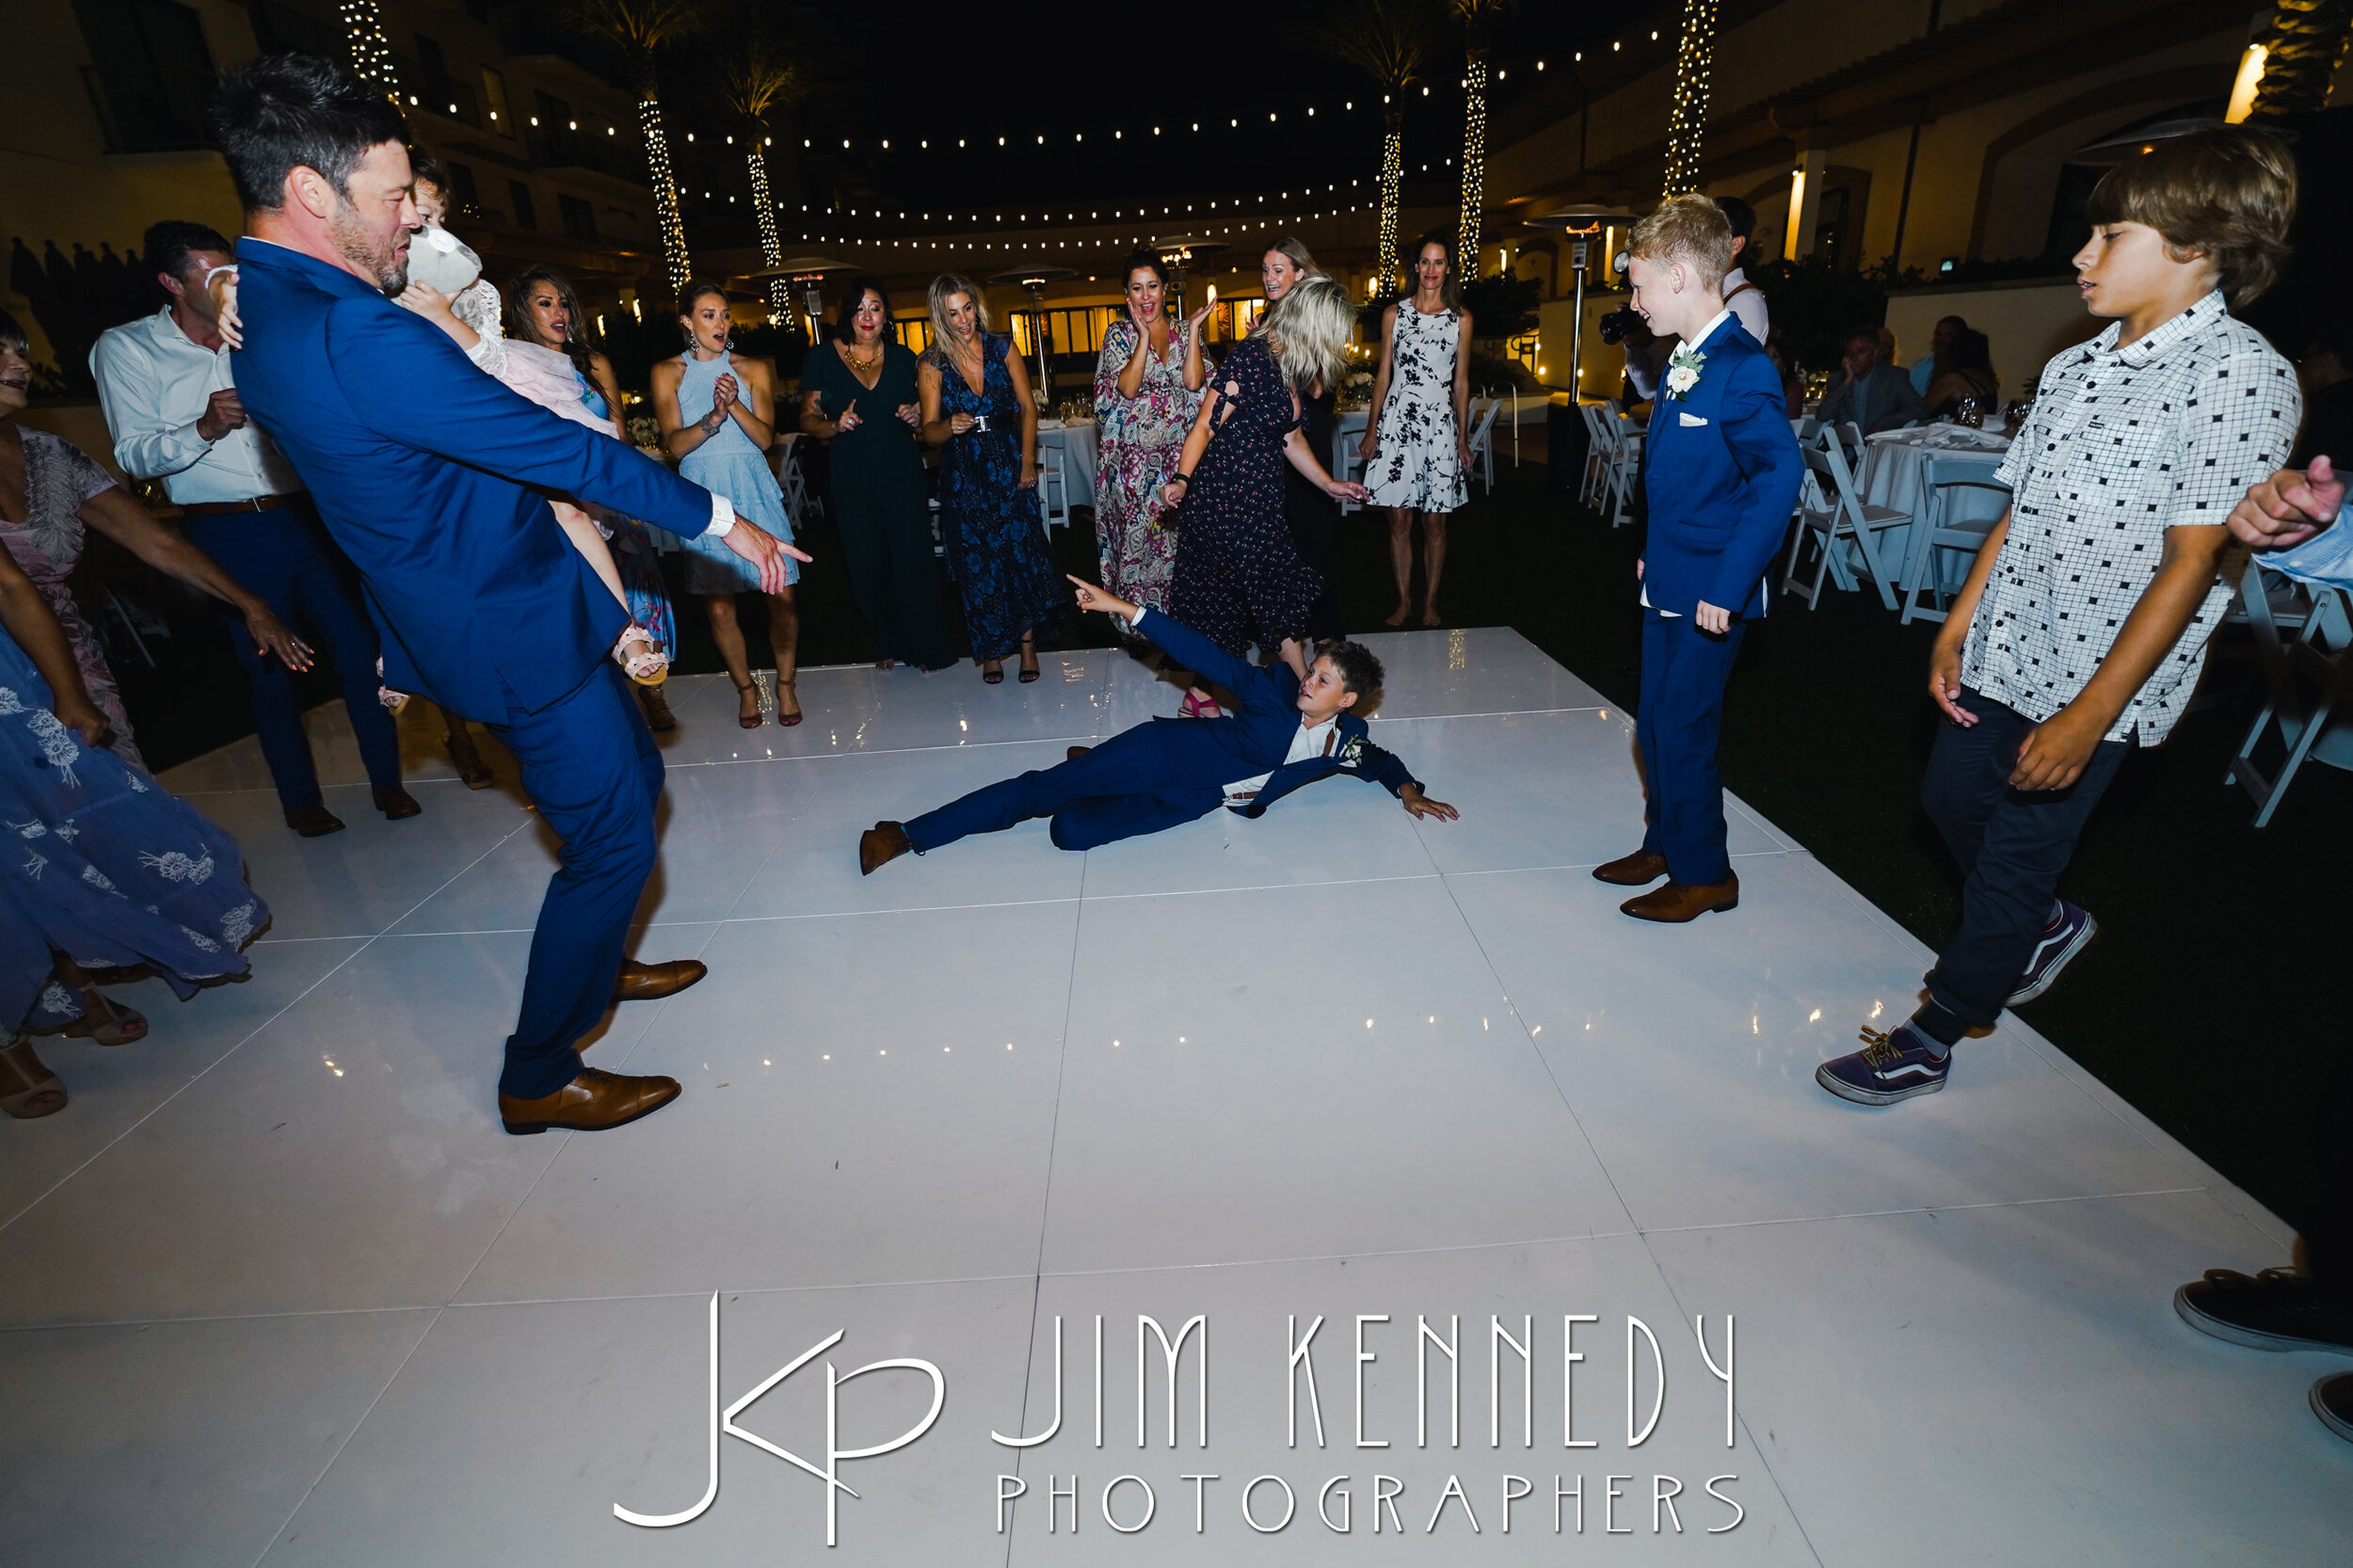 waterfront-hilton-wedding-jim-kennedy-photographers_0204.JPG